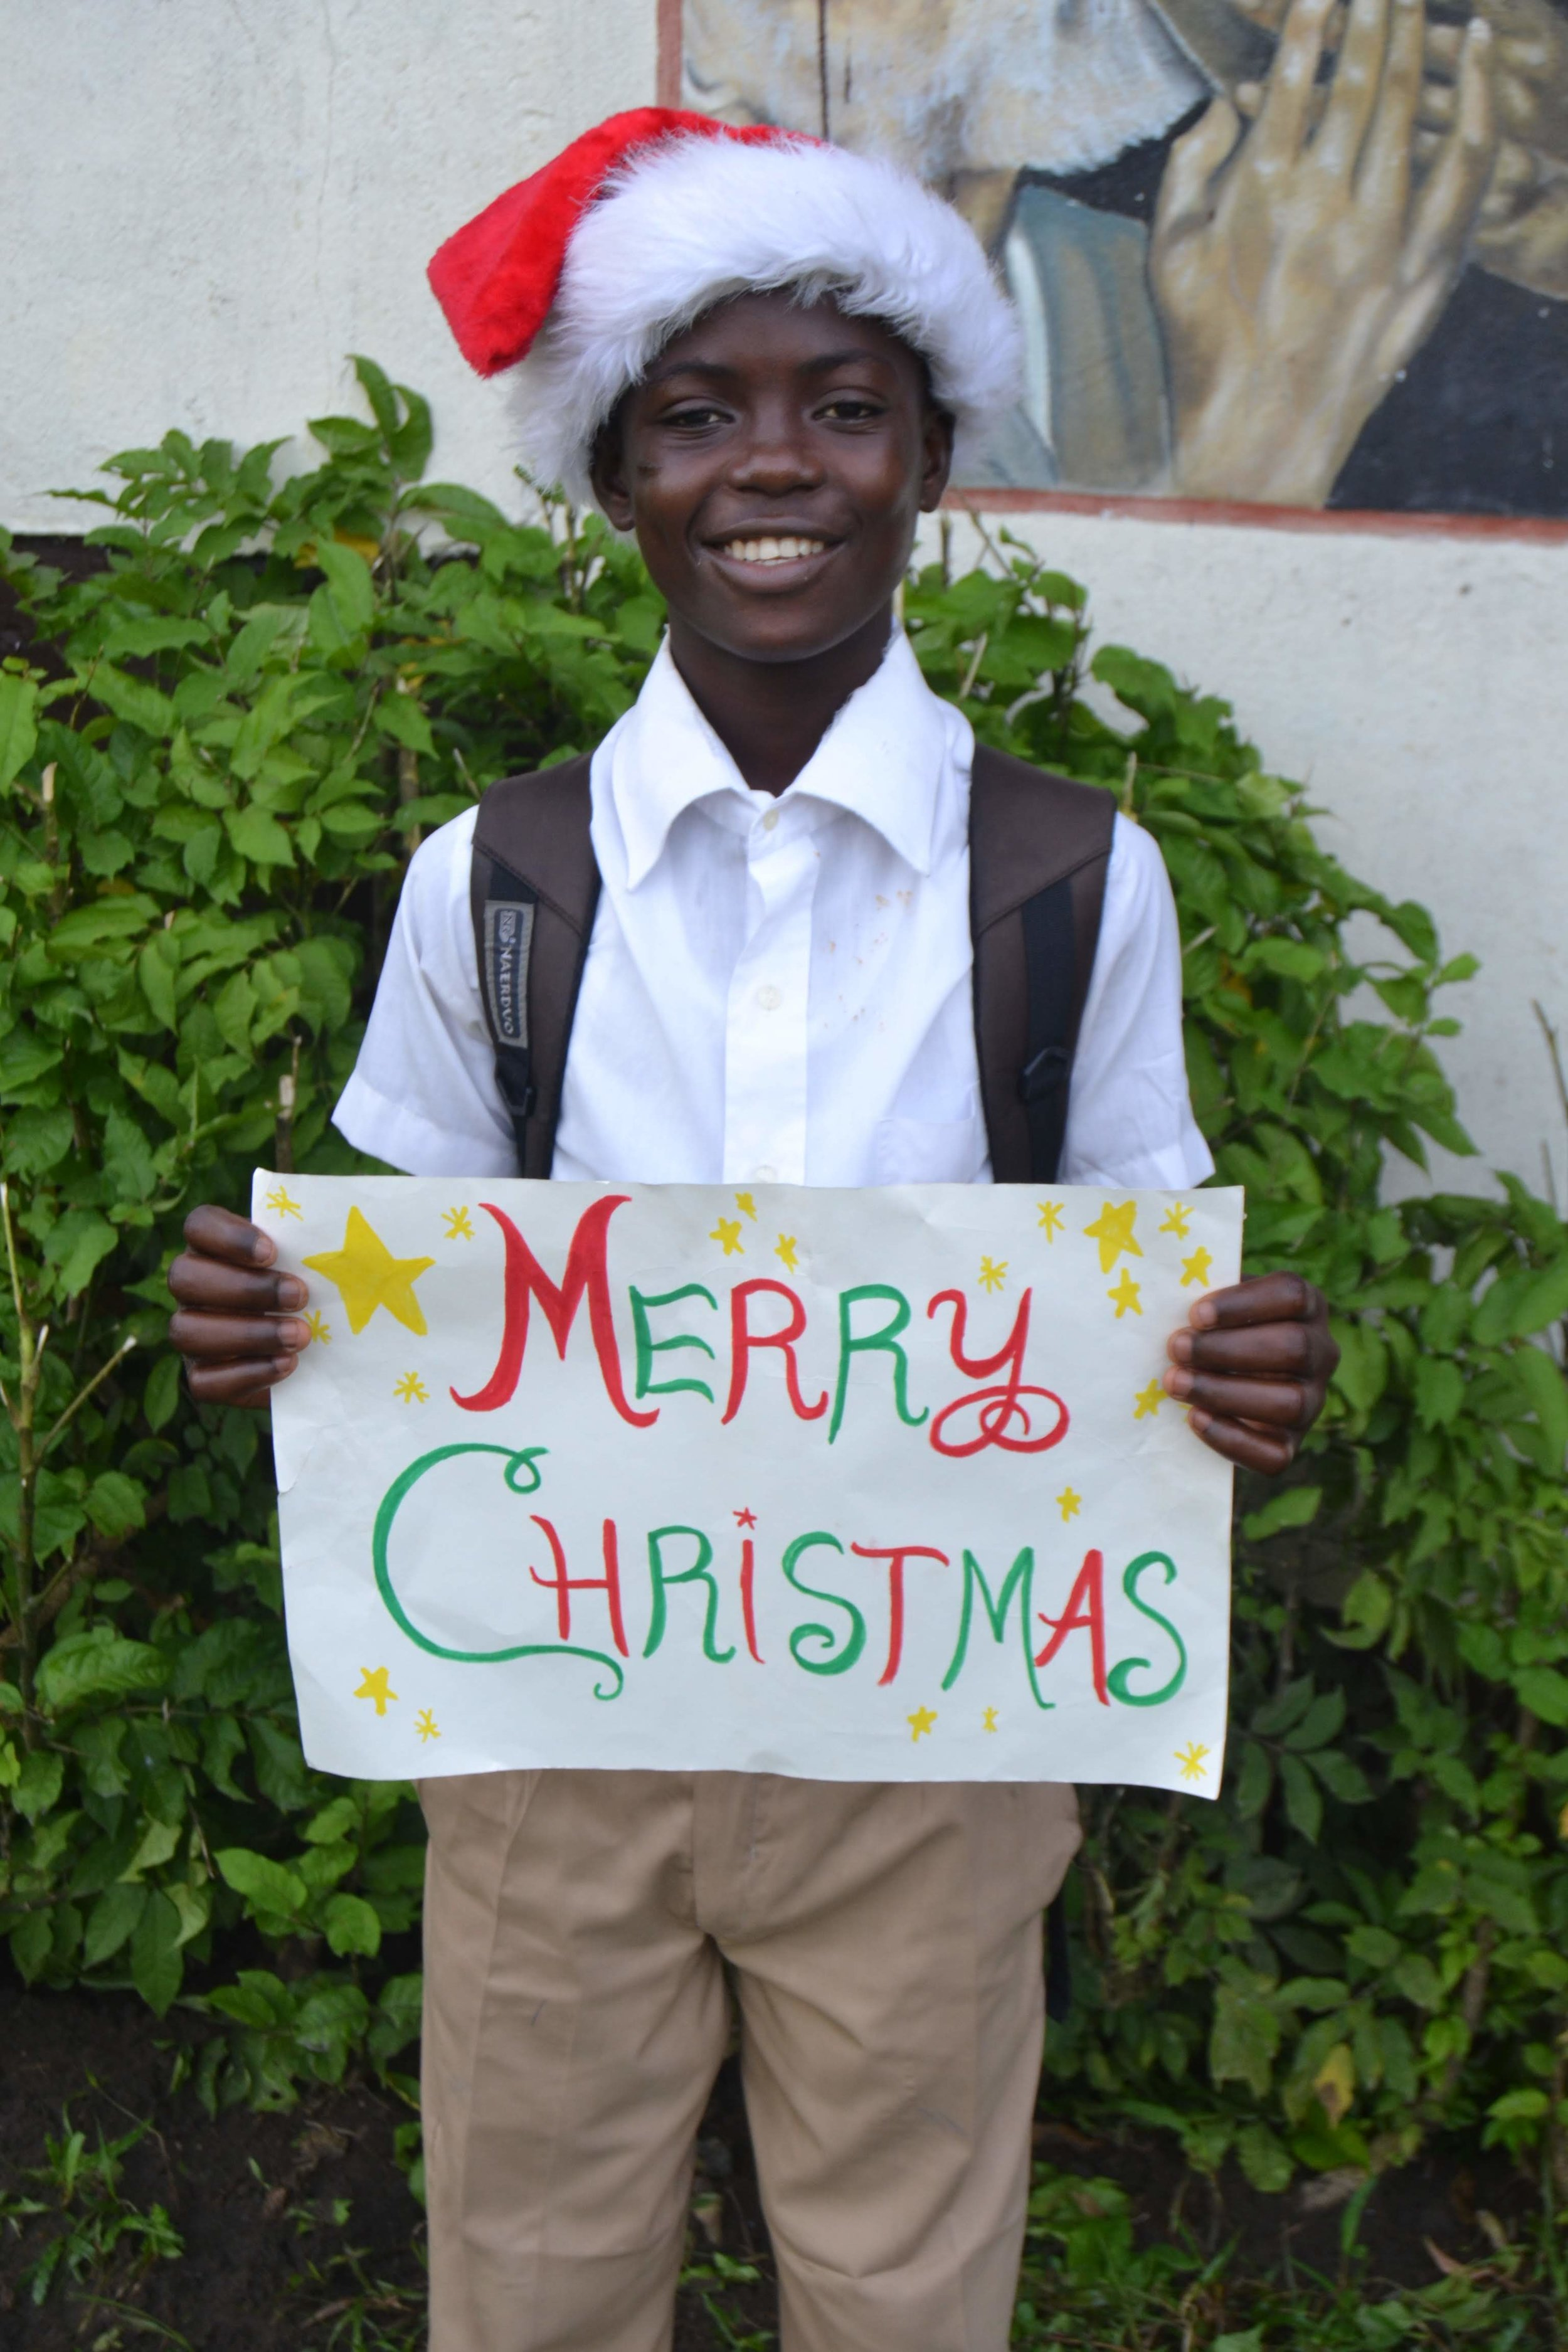 A St. Anthony student sharing Christmas greeting in 2013.